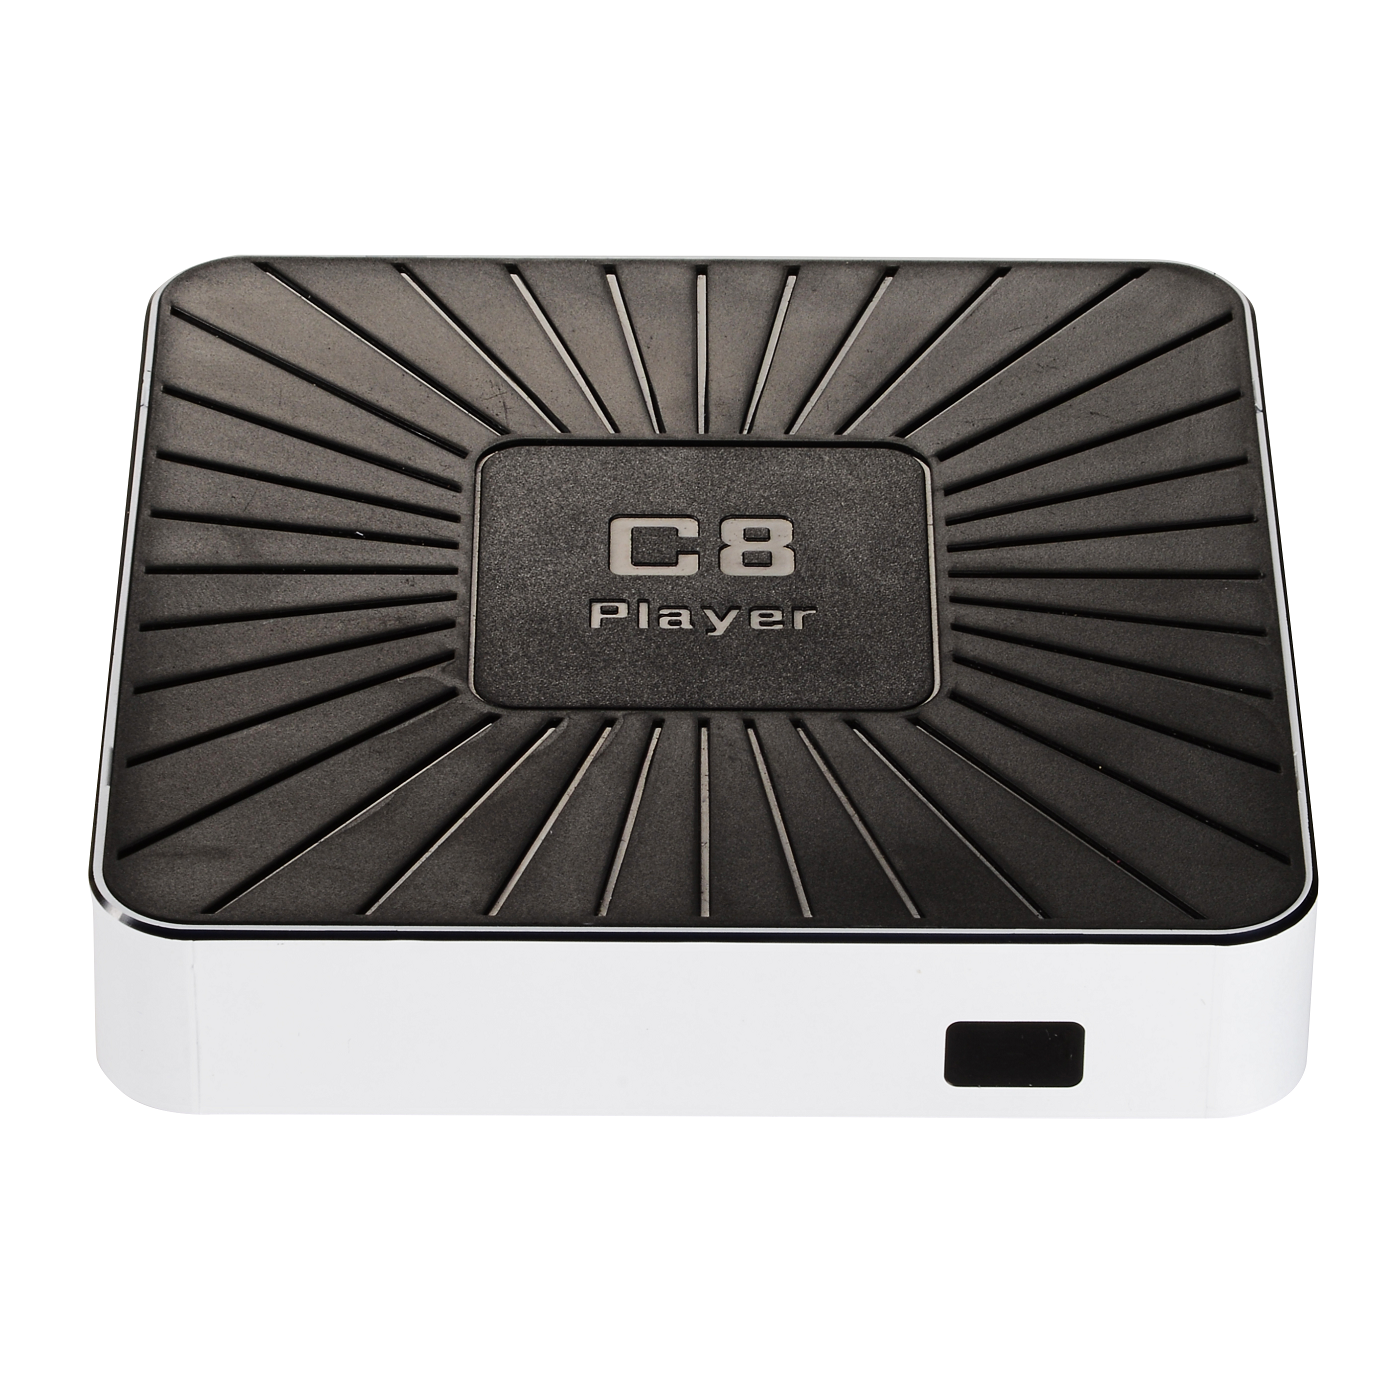 C8PLAYER Free Shipping Android TV-BOX SD Card Up To 32GB  Support Conversion Between SDR and HDR Remote Controller книги эксмо севастополь и ялта 2 е изд